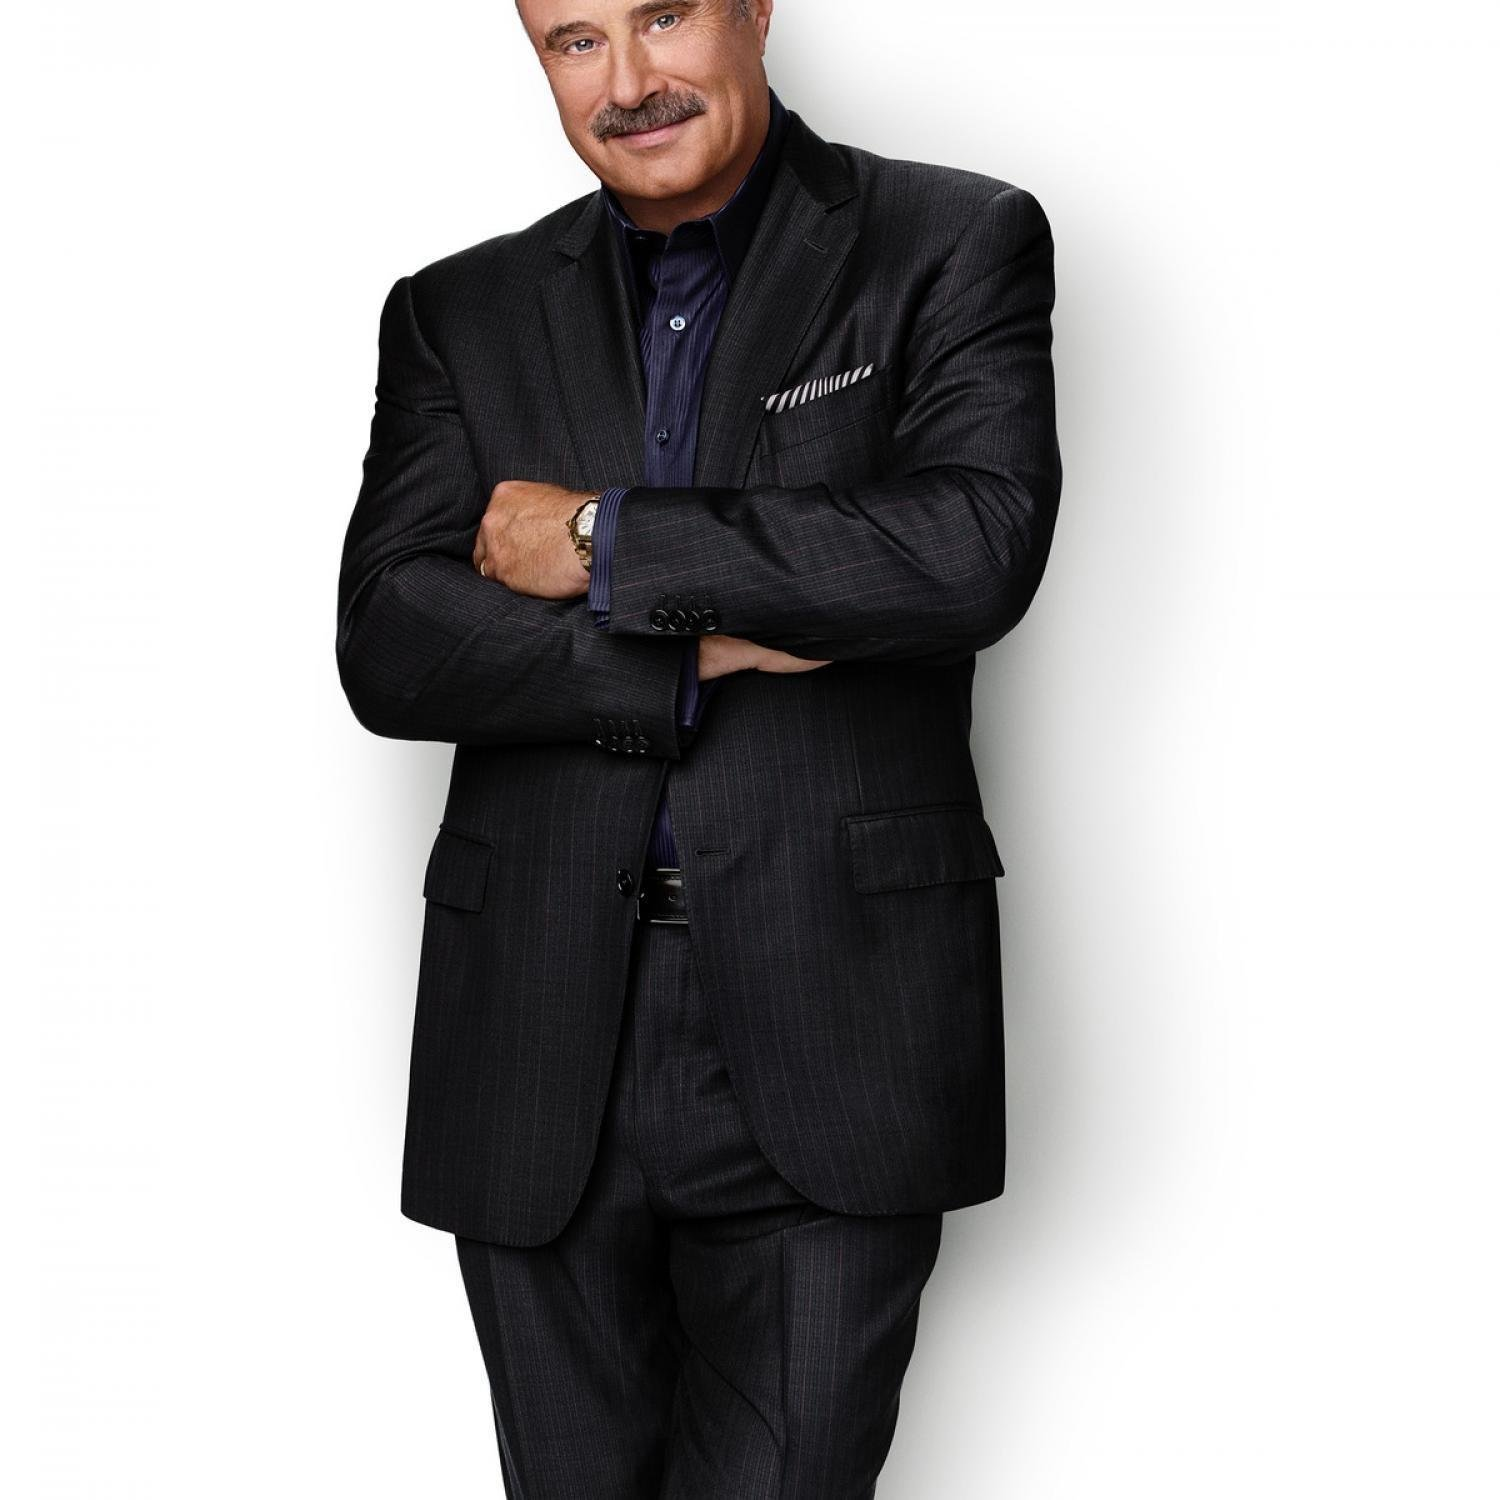 Dr. Phil: What I Know Now